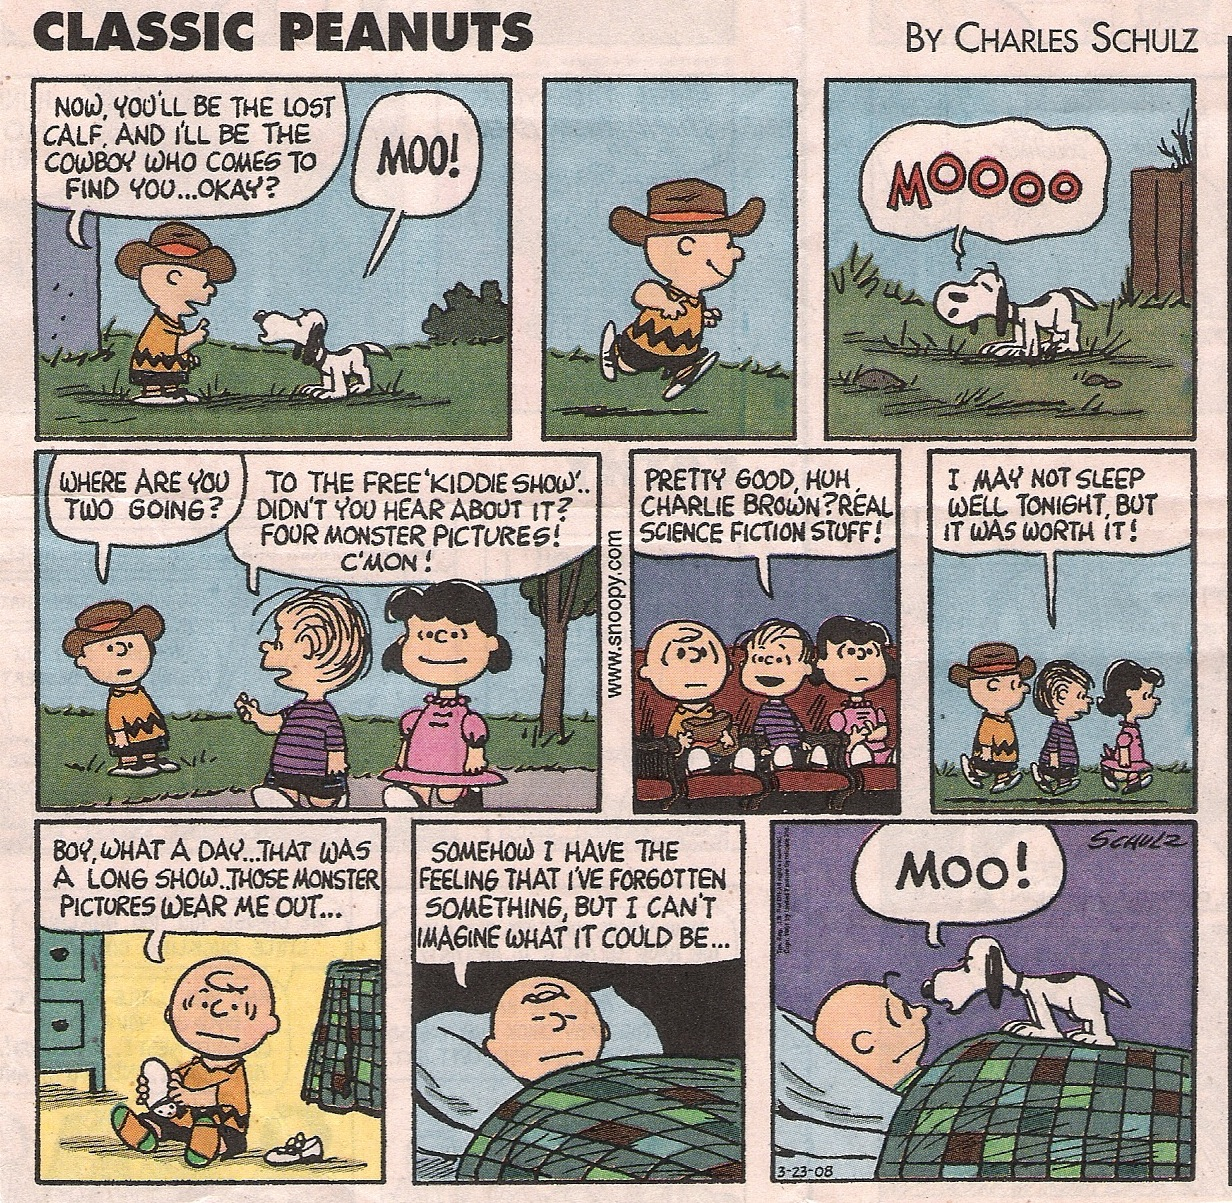 ... has been releasing beautifully bound collections, ultimately comprising  the entire run of Charles Schulz's comic strip masterpiece